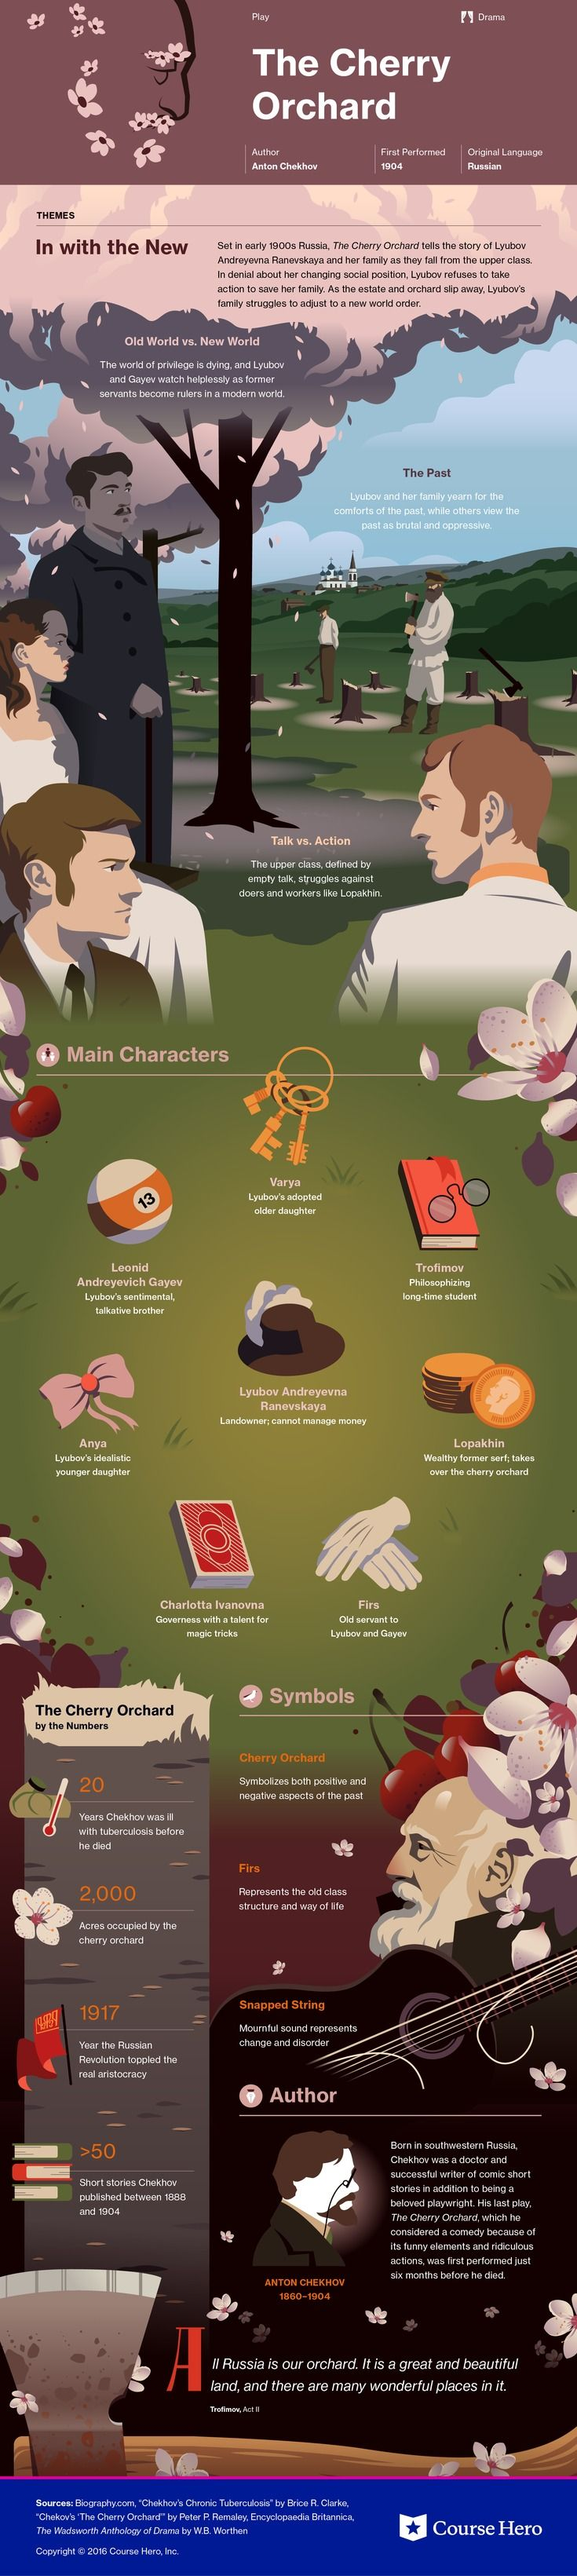 This @CourseHero infographic on The Cherry Orchard is both visually stunning and informative!